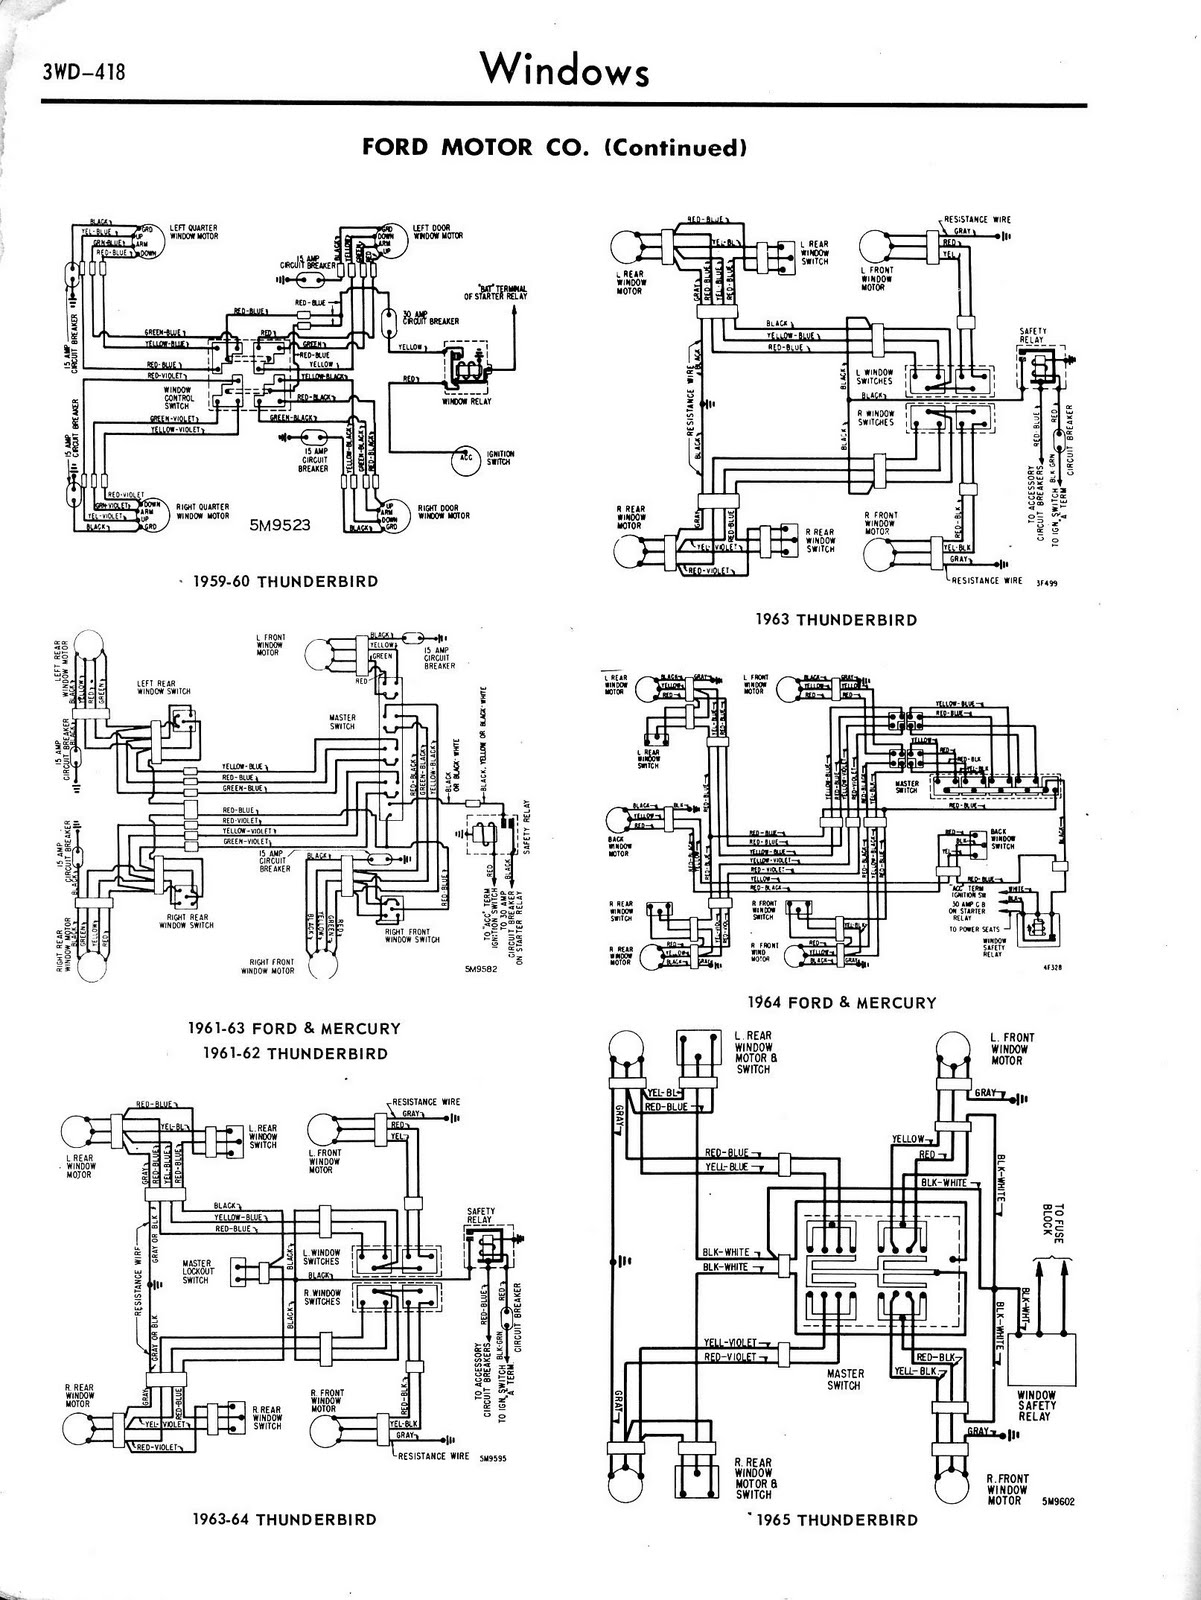 Overdrive Wiring Diagram   Wiring Liry on hard drive schematic, hard drive system, internal hard drive diagram, hard drive door, sata hard drive diagram, hard drive components diagram, hard drive tools, hard drive serial number, hard drive circuit, computer hard drive diagram, hard drive lights, hard drive connection diagram, hard drive radio, hard drive exploded view, hard drive plugs, hard drive internal view, hard drive generator, hard drive disassembly, hard drive wheels, hard drive seats,